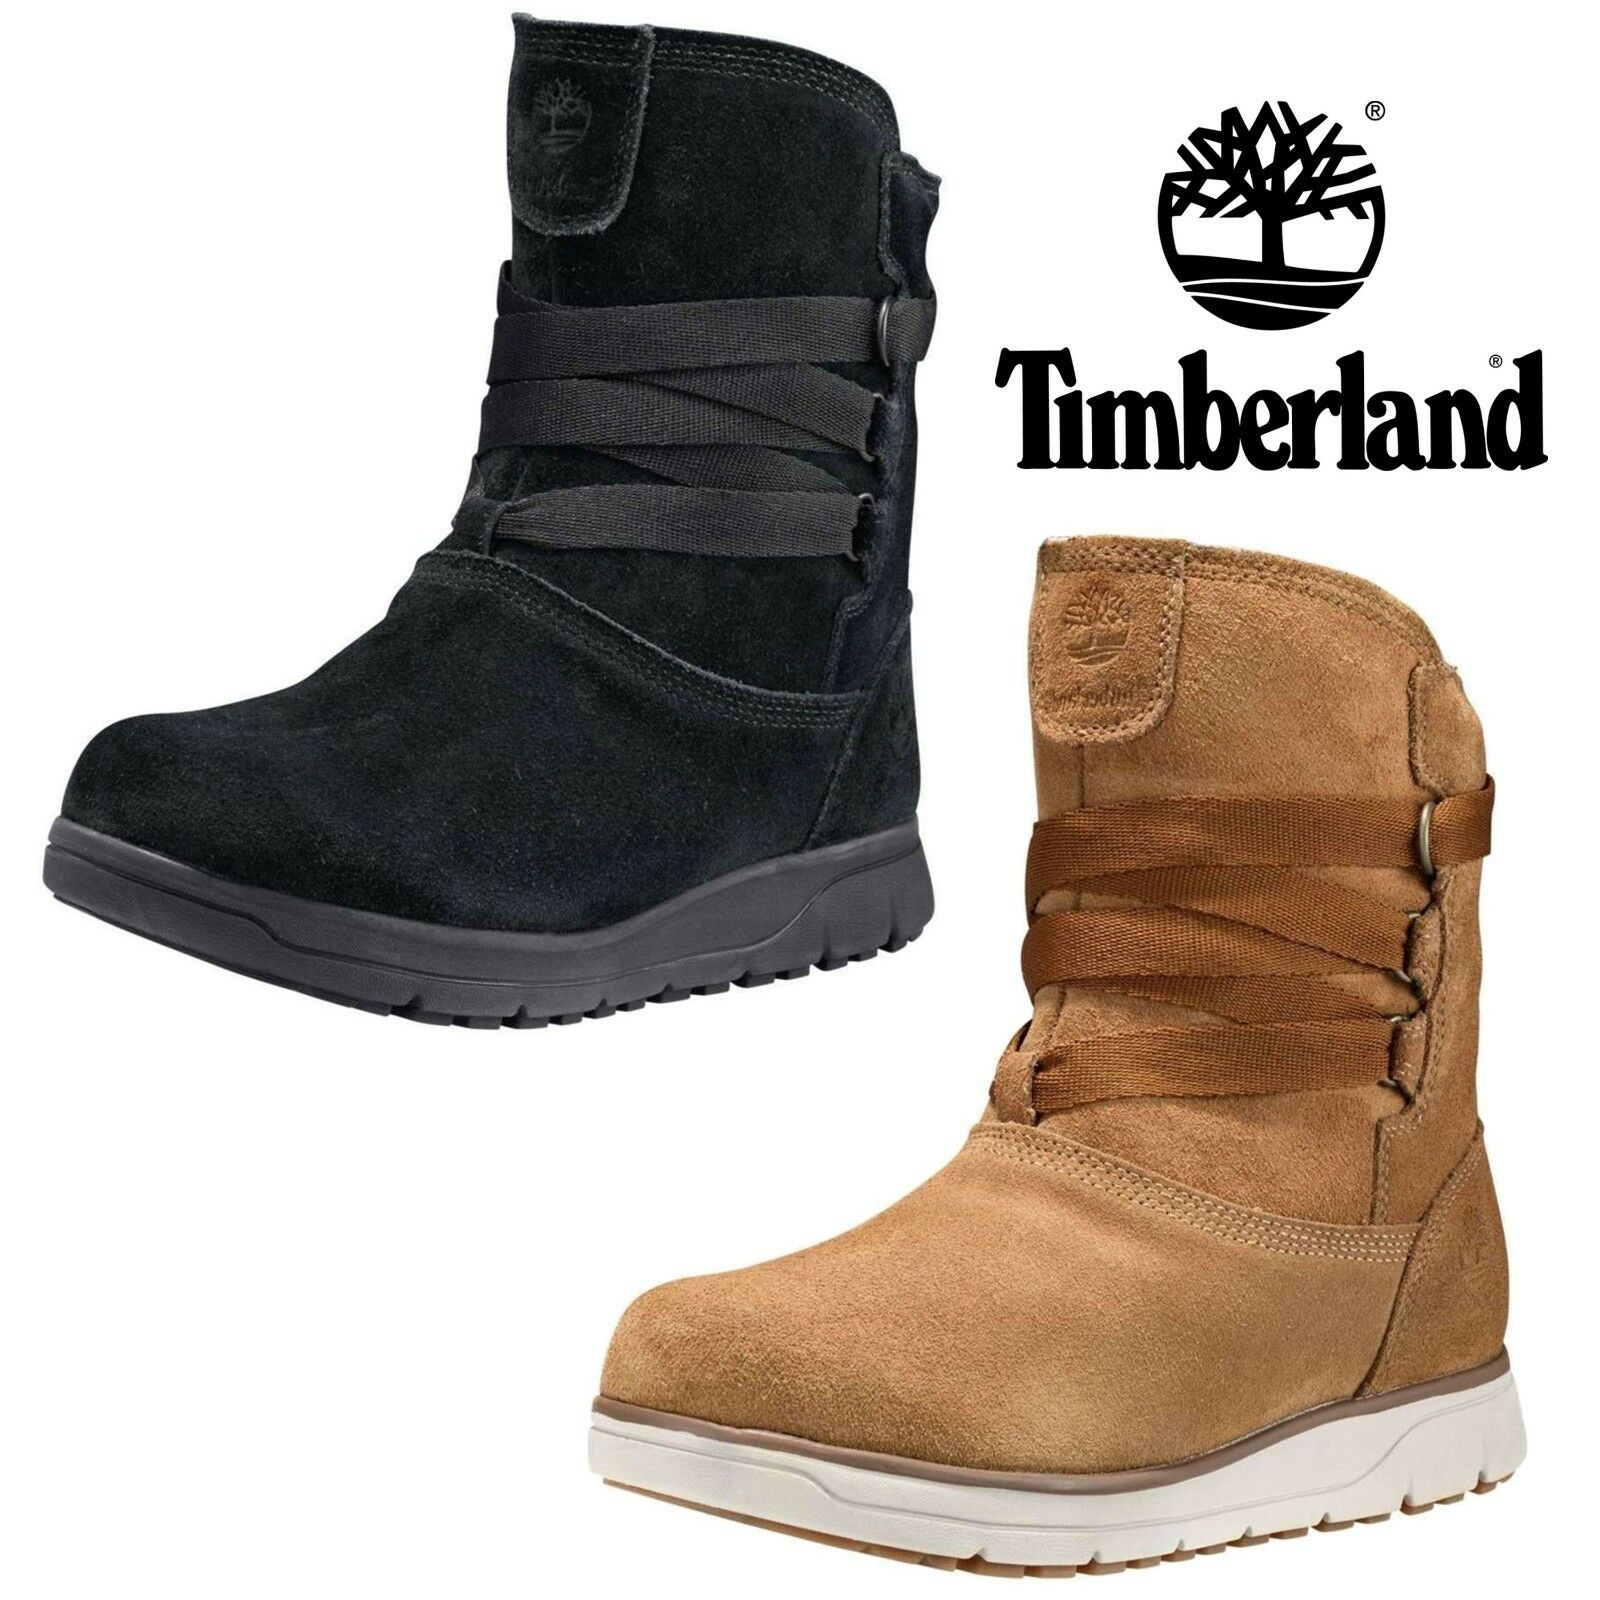 NEW Timberland Women Leighland Pull On Insulated Waterproof Winter Suede Boots